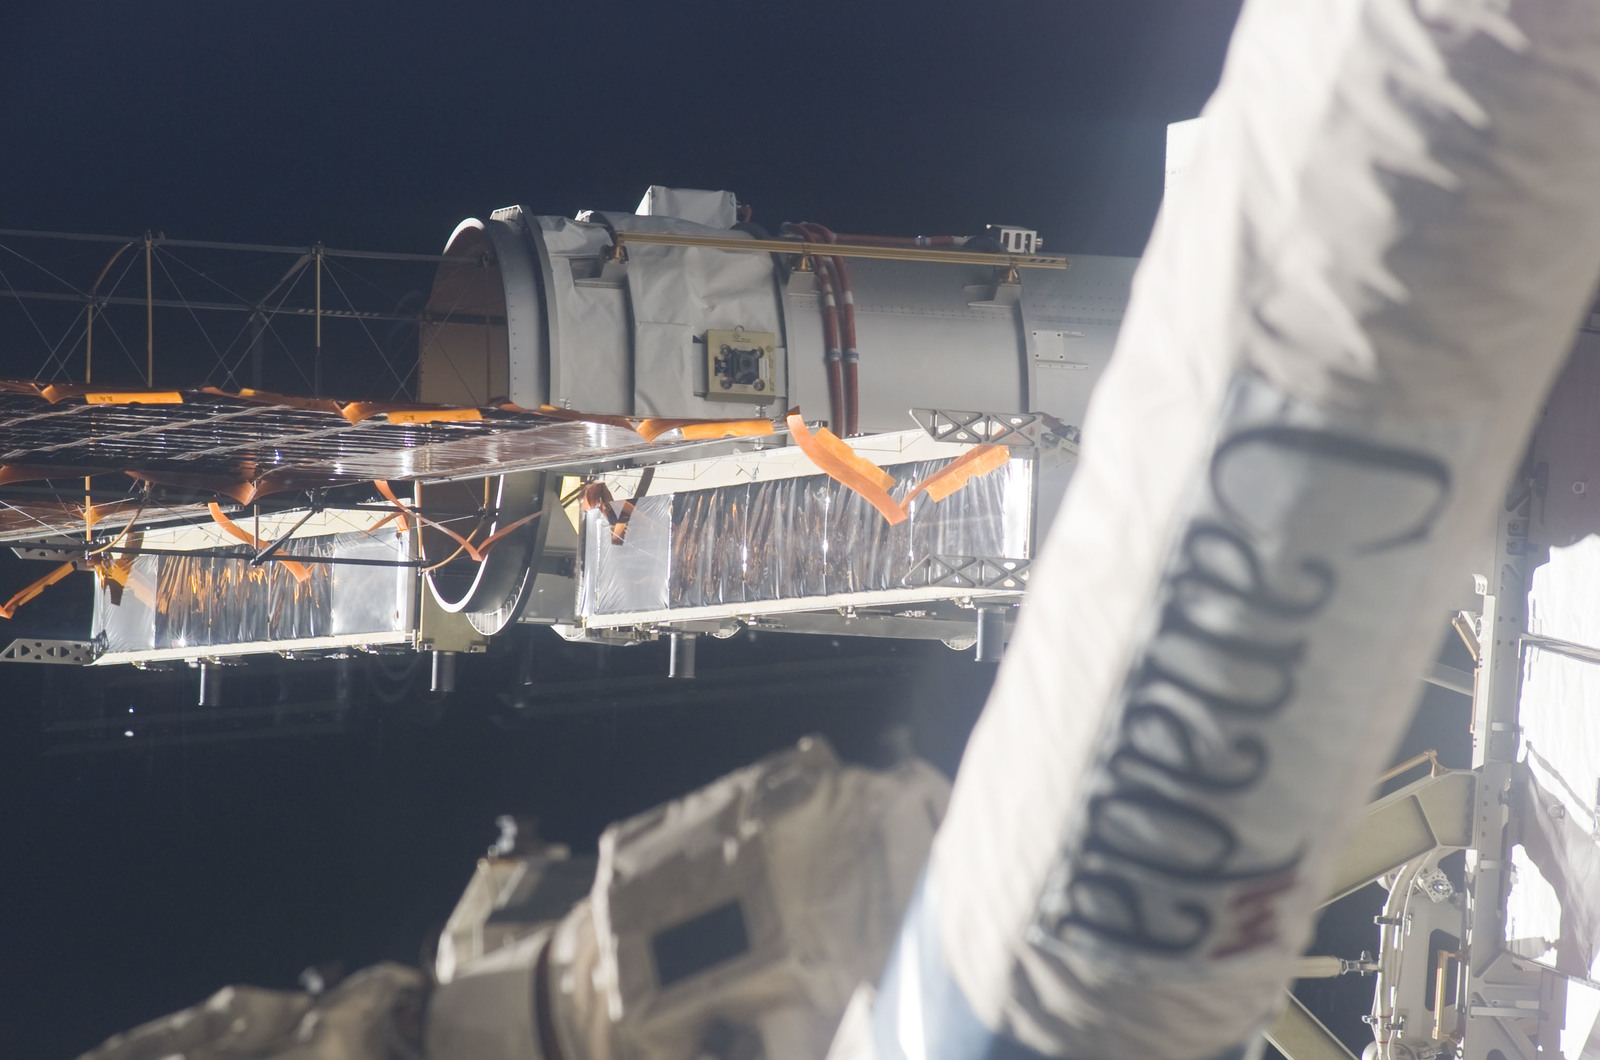 S115E06258 - STS-115 - P4 Truss SAW during third Extravehicular Activity (EVA)